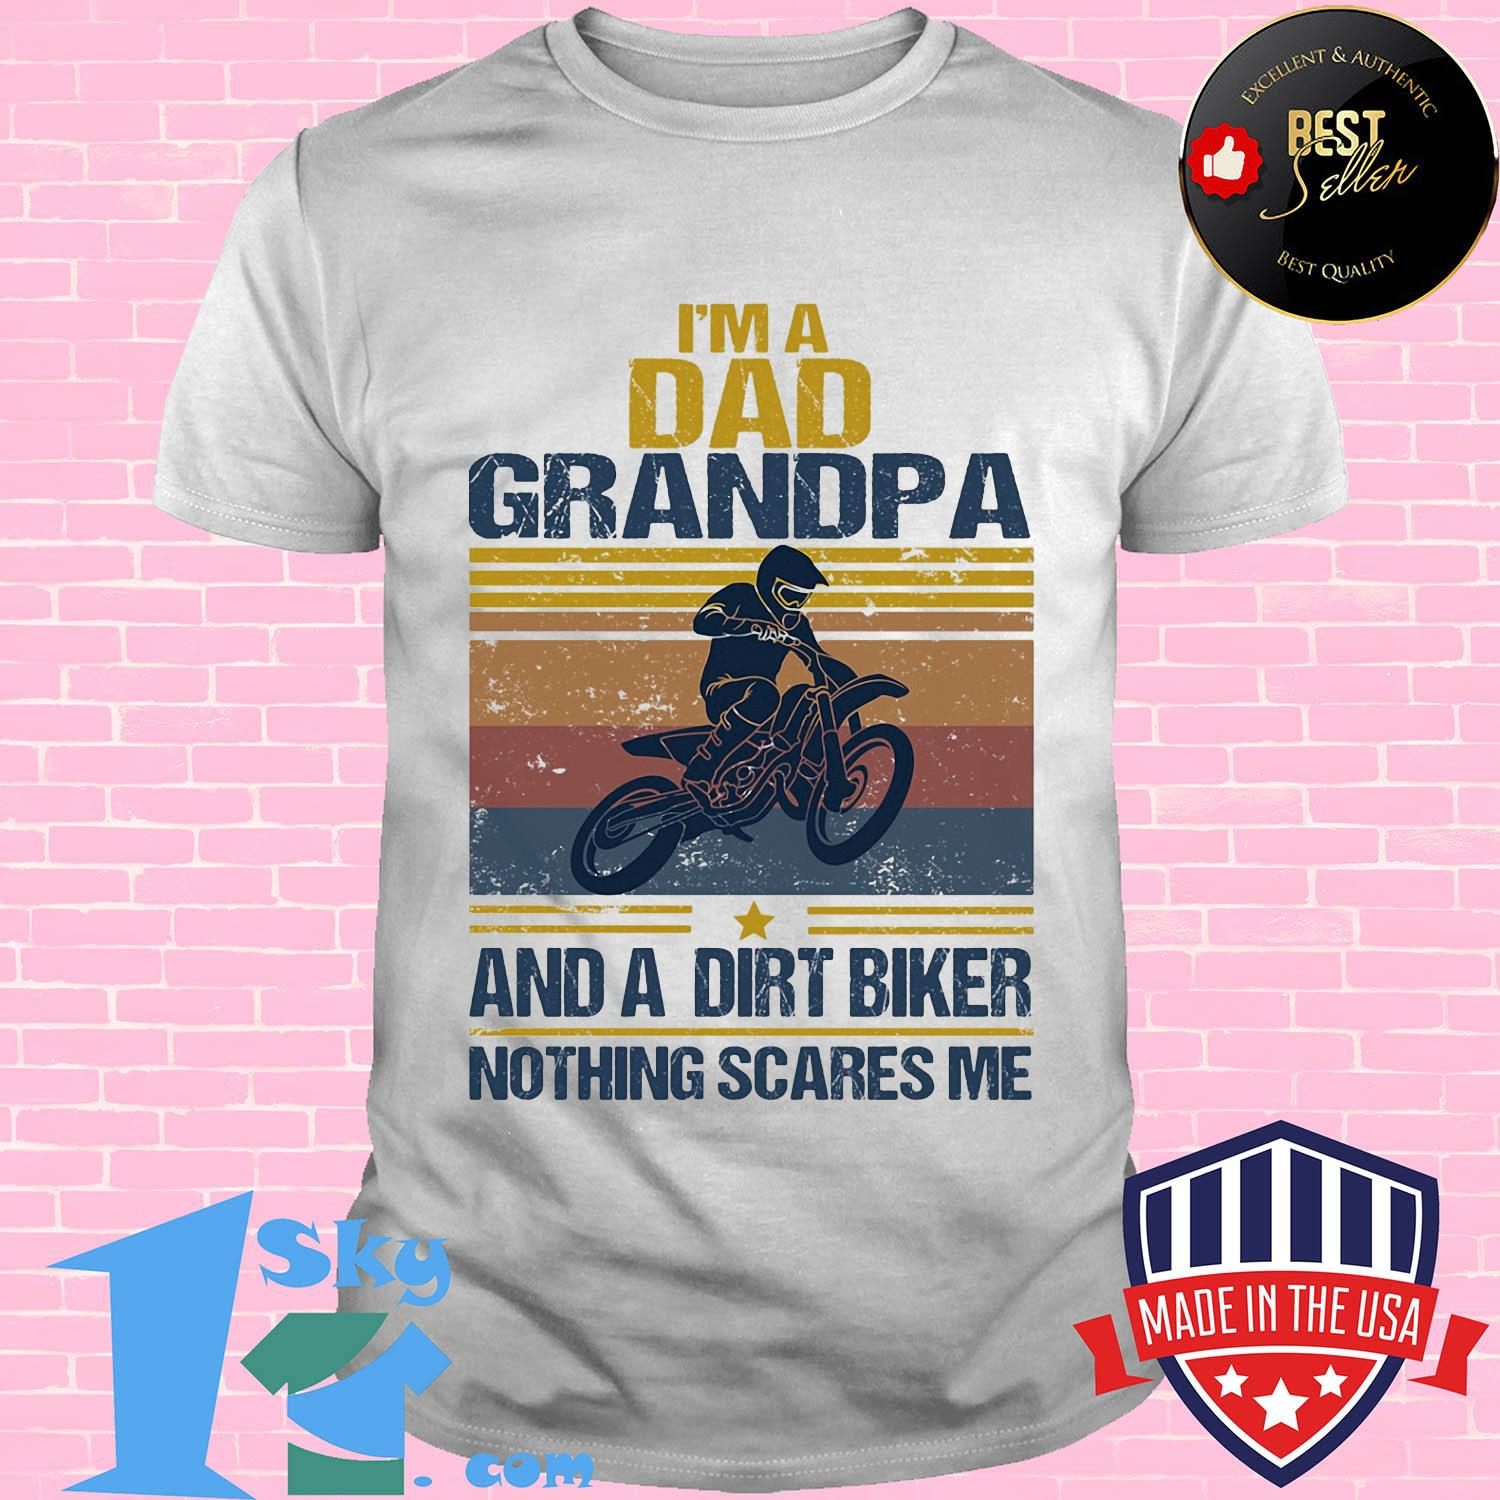 I'm a dad grandpa and a dirt biker nothing scares me vintage shirt